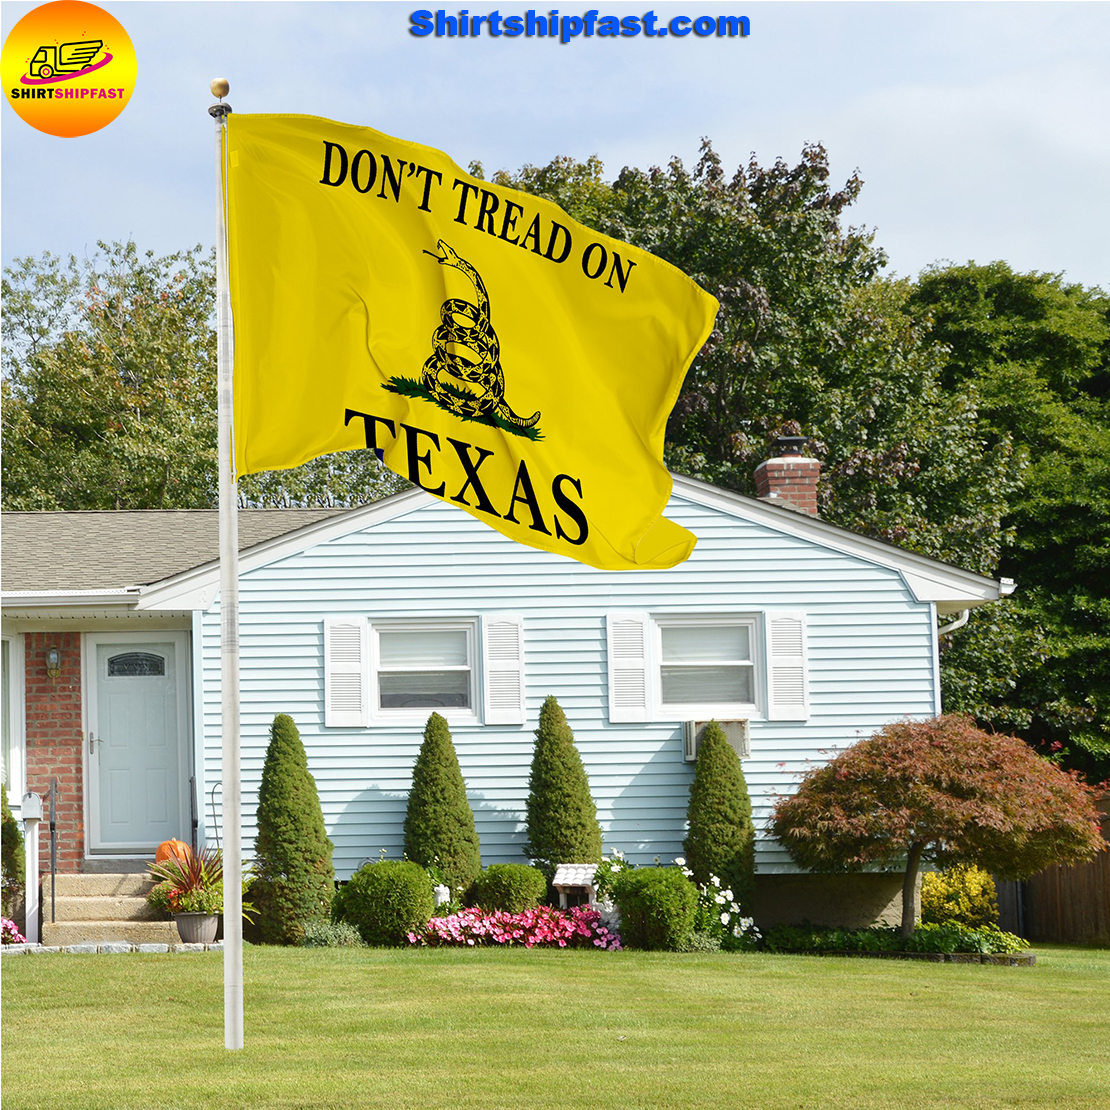 Don't tread on Texas flag - Picture 2